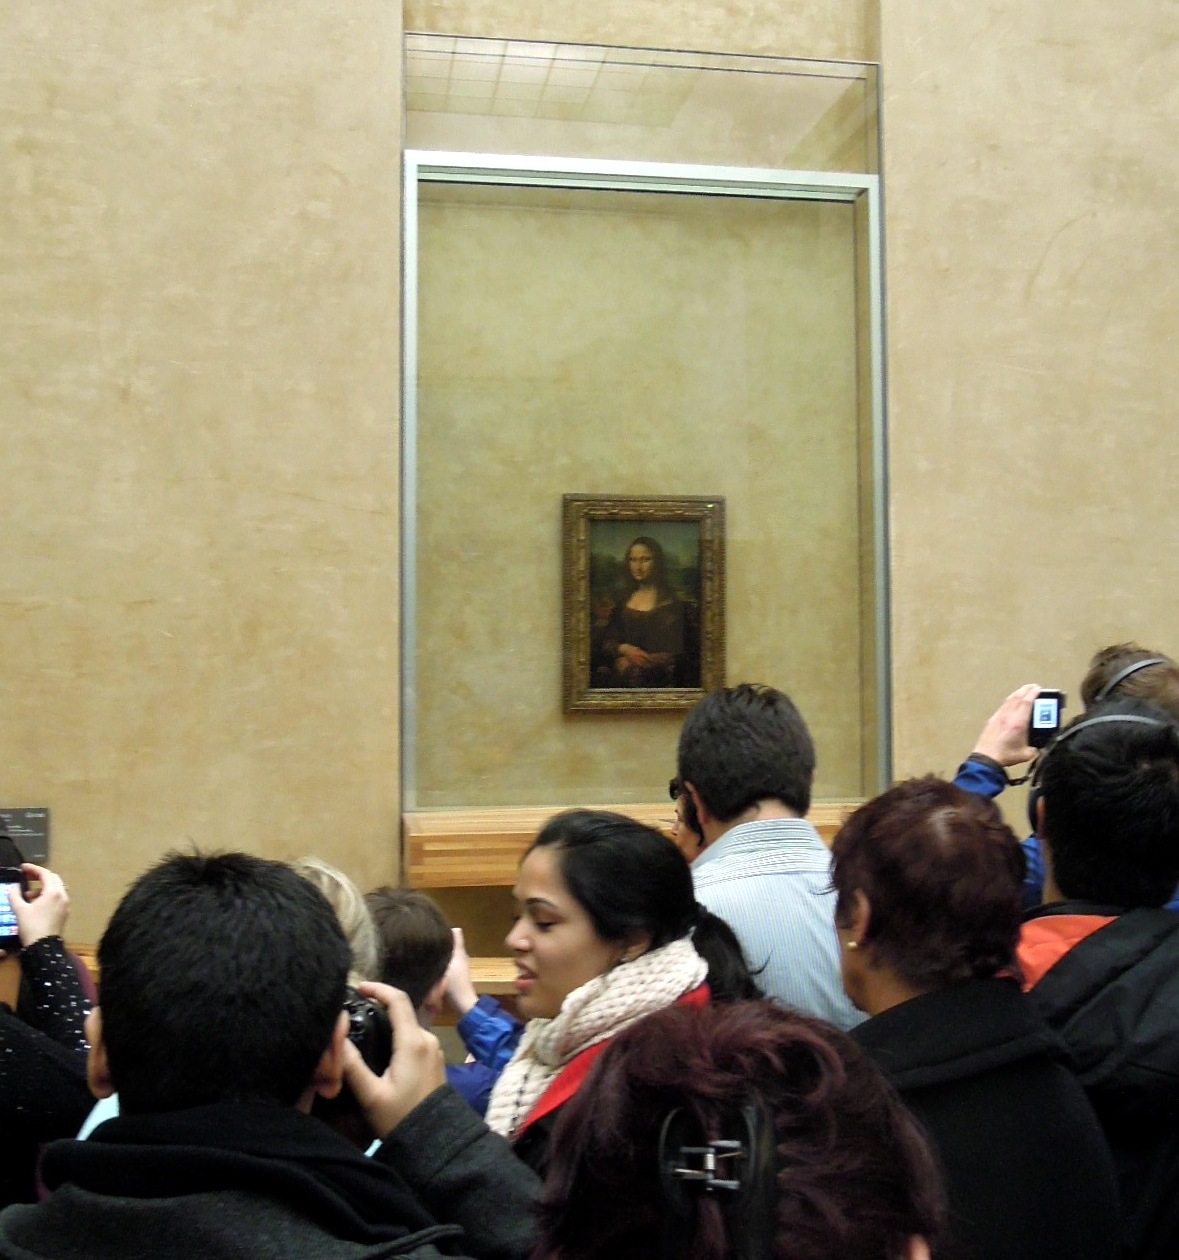 The Mona Lisa, surrounded by people and cameras